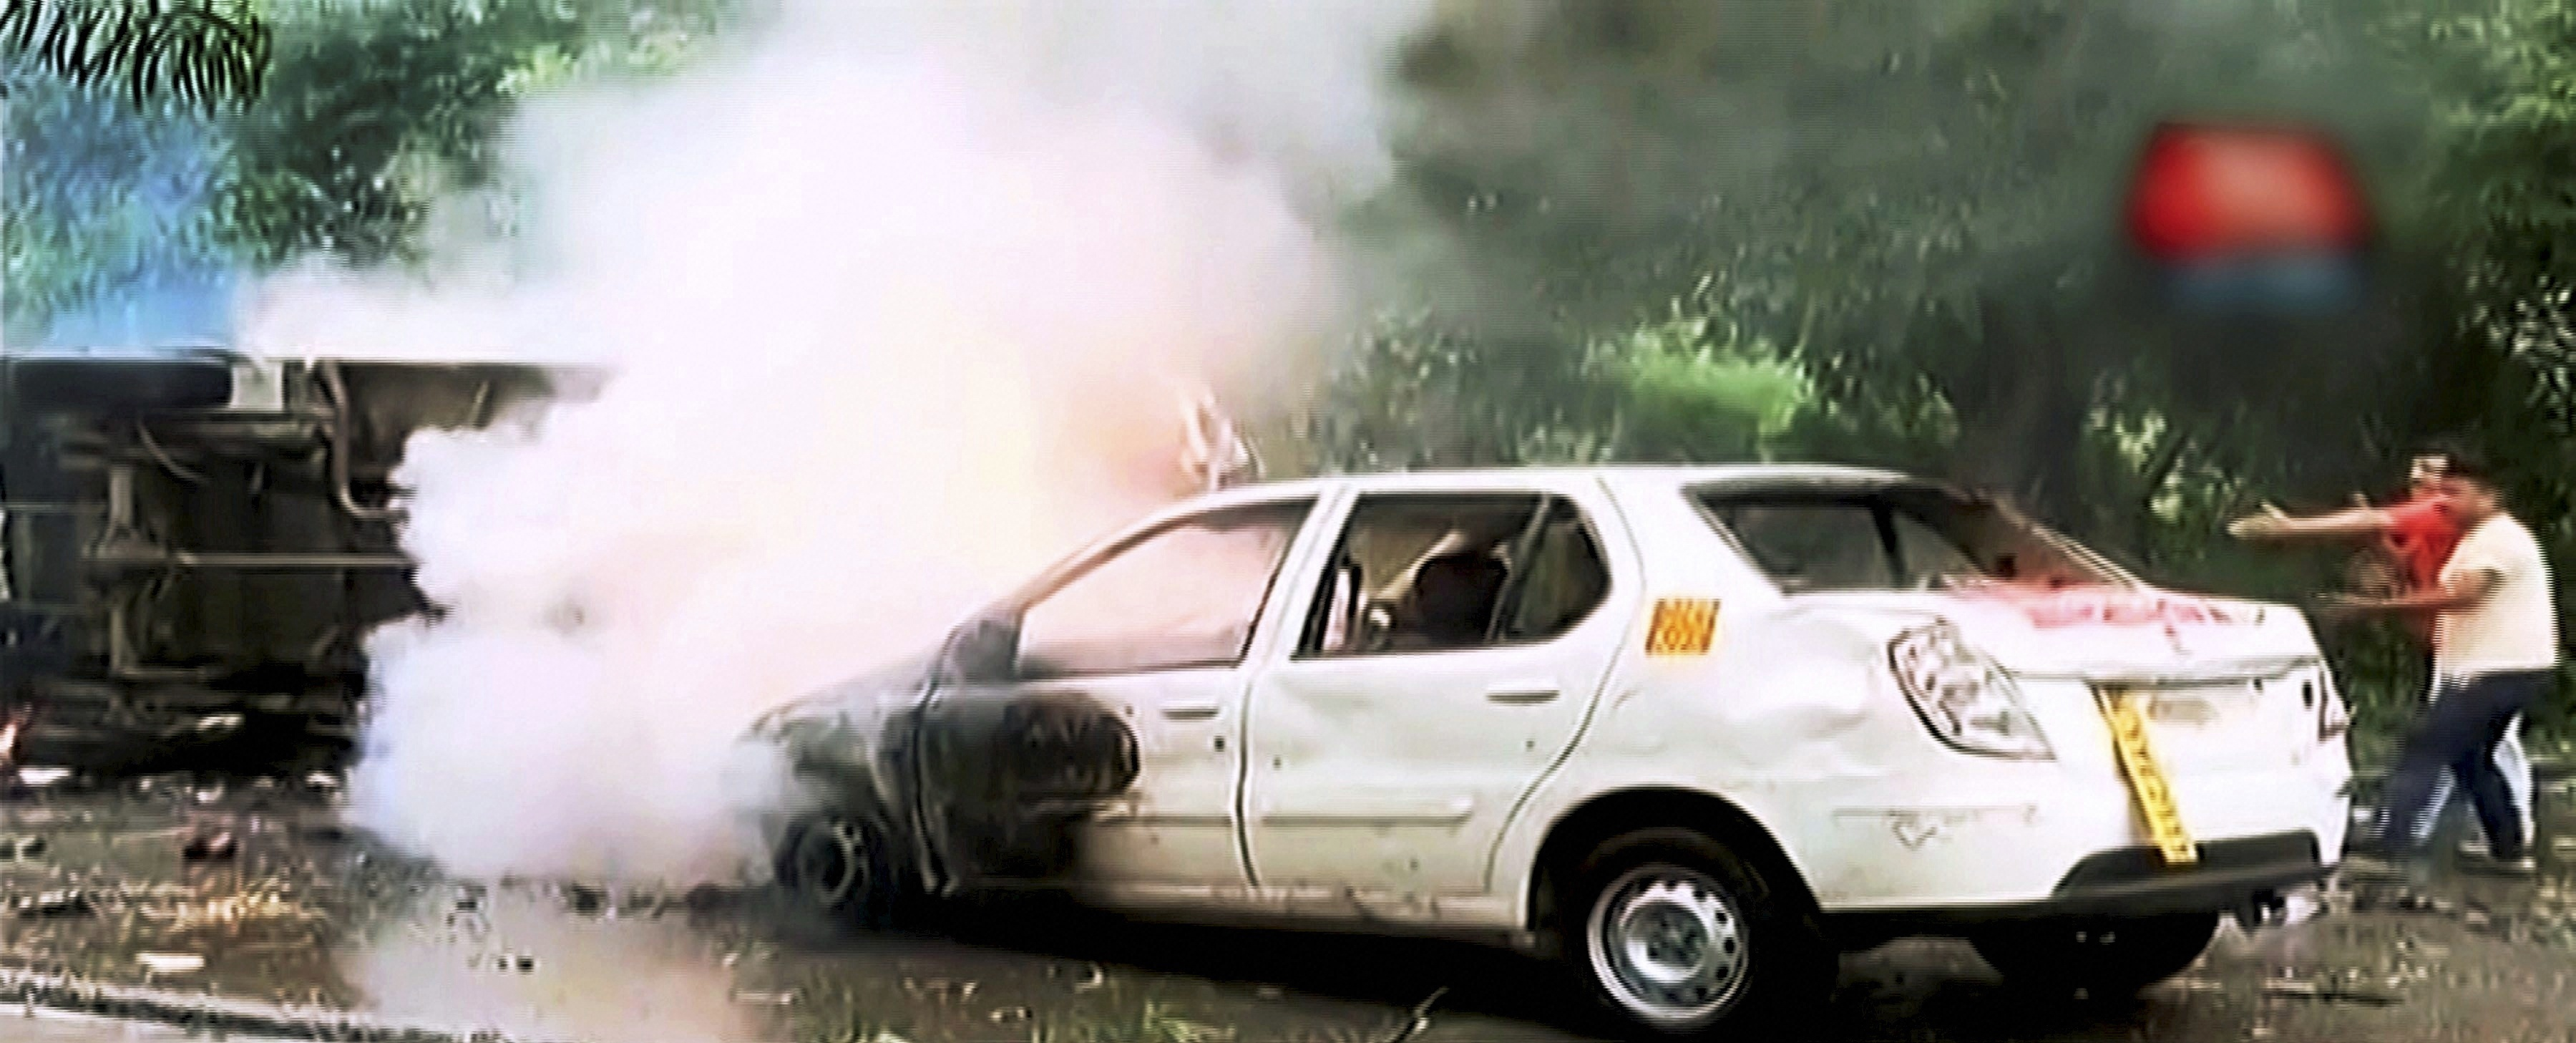 Panchkula: A vehicle burns during arson following Dera Sacha Sauda chief Gurmeet Ram Rahim's conviction in Panchkula on Friday. PTI Photo / TV GRAB AAJ TAK(PTI8_25_2017_000123B)